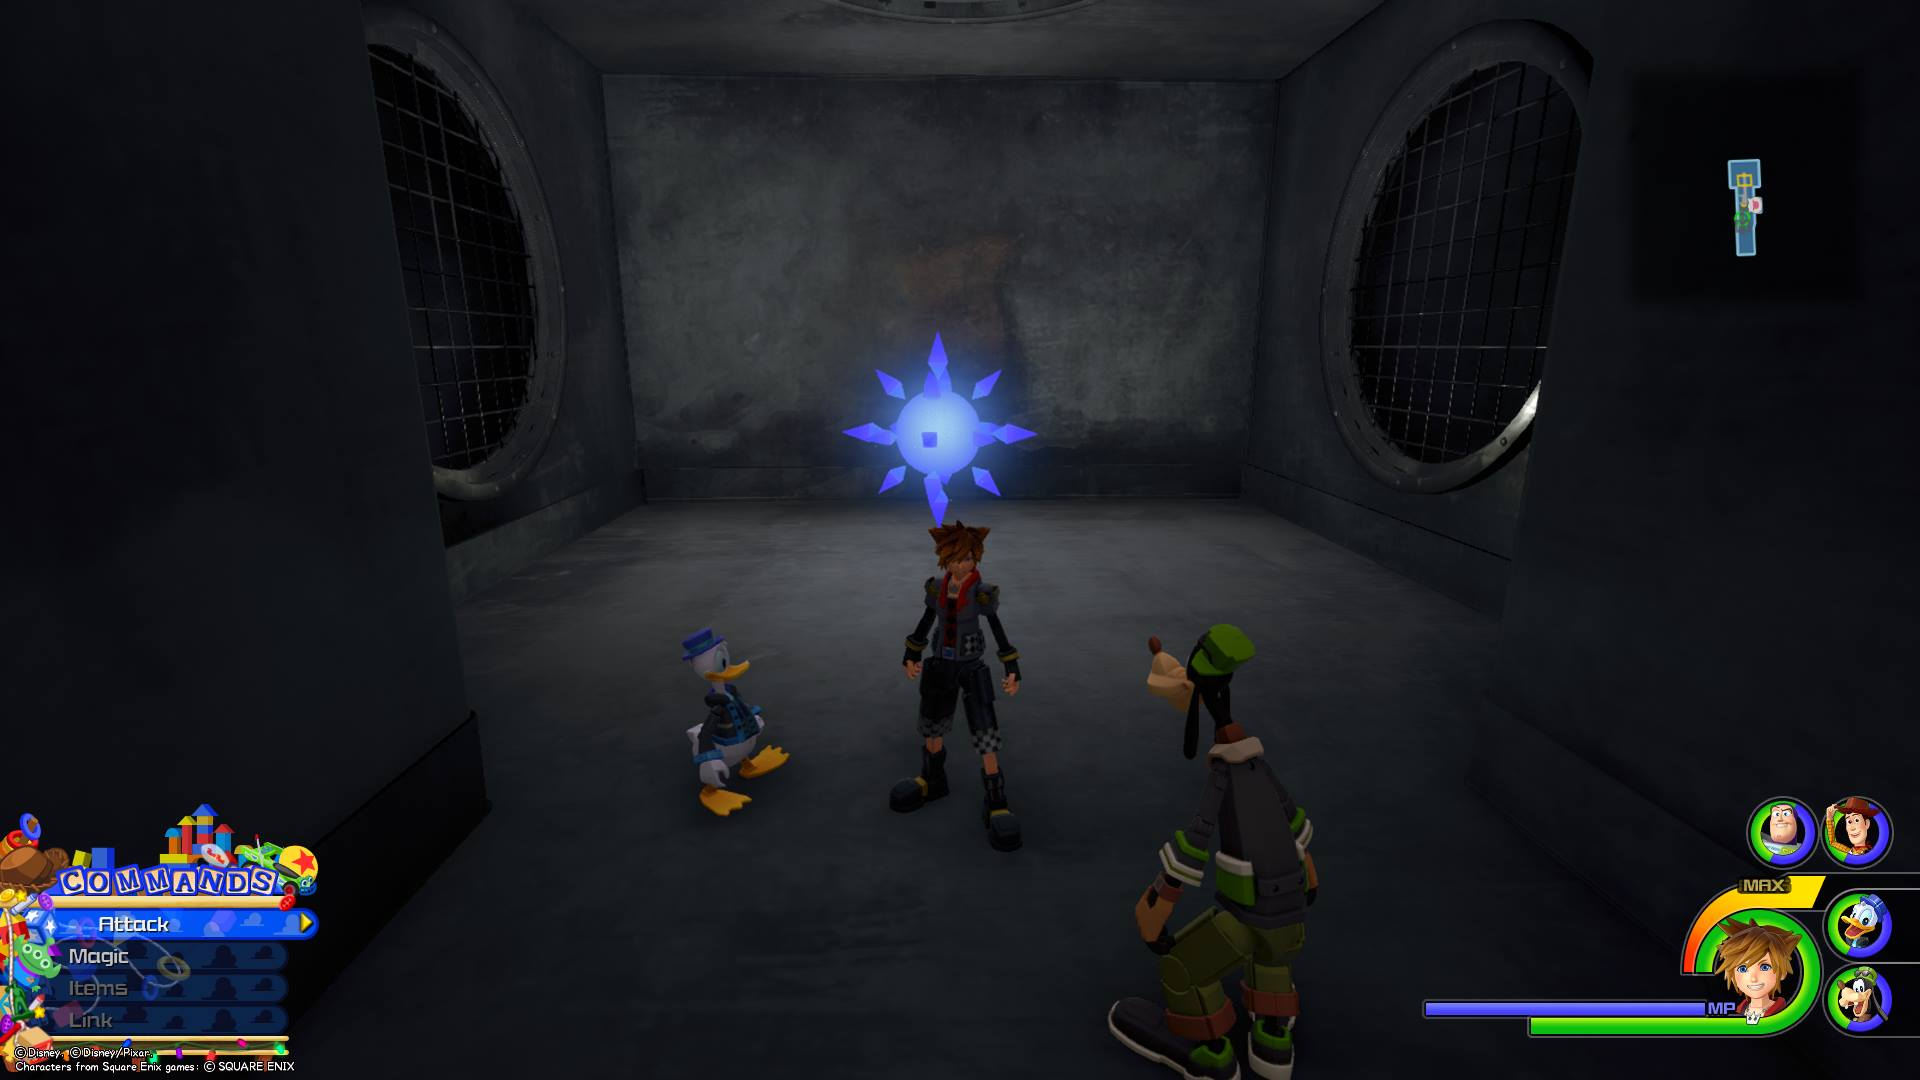 The fourth Battlegate in Kingdom Hearts 3 is located in the Kid Korral area of Toy Box.